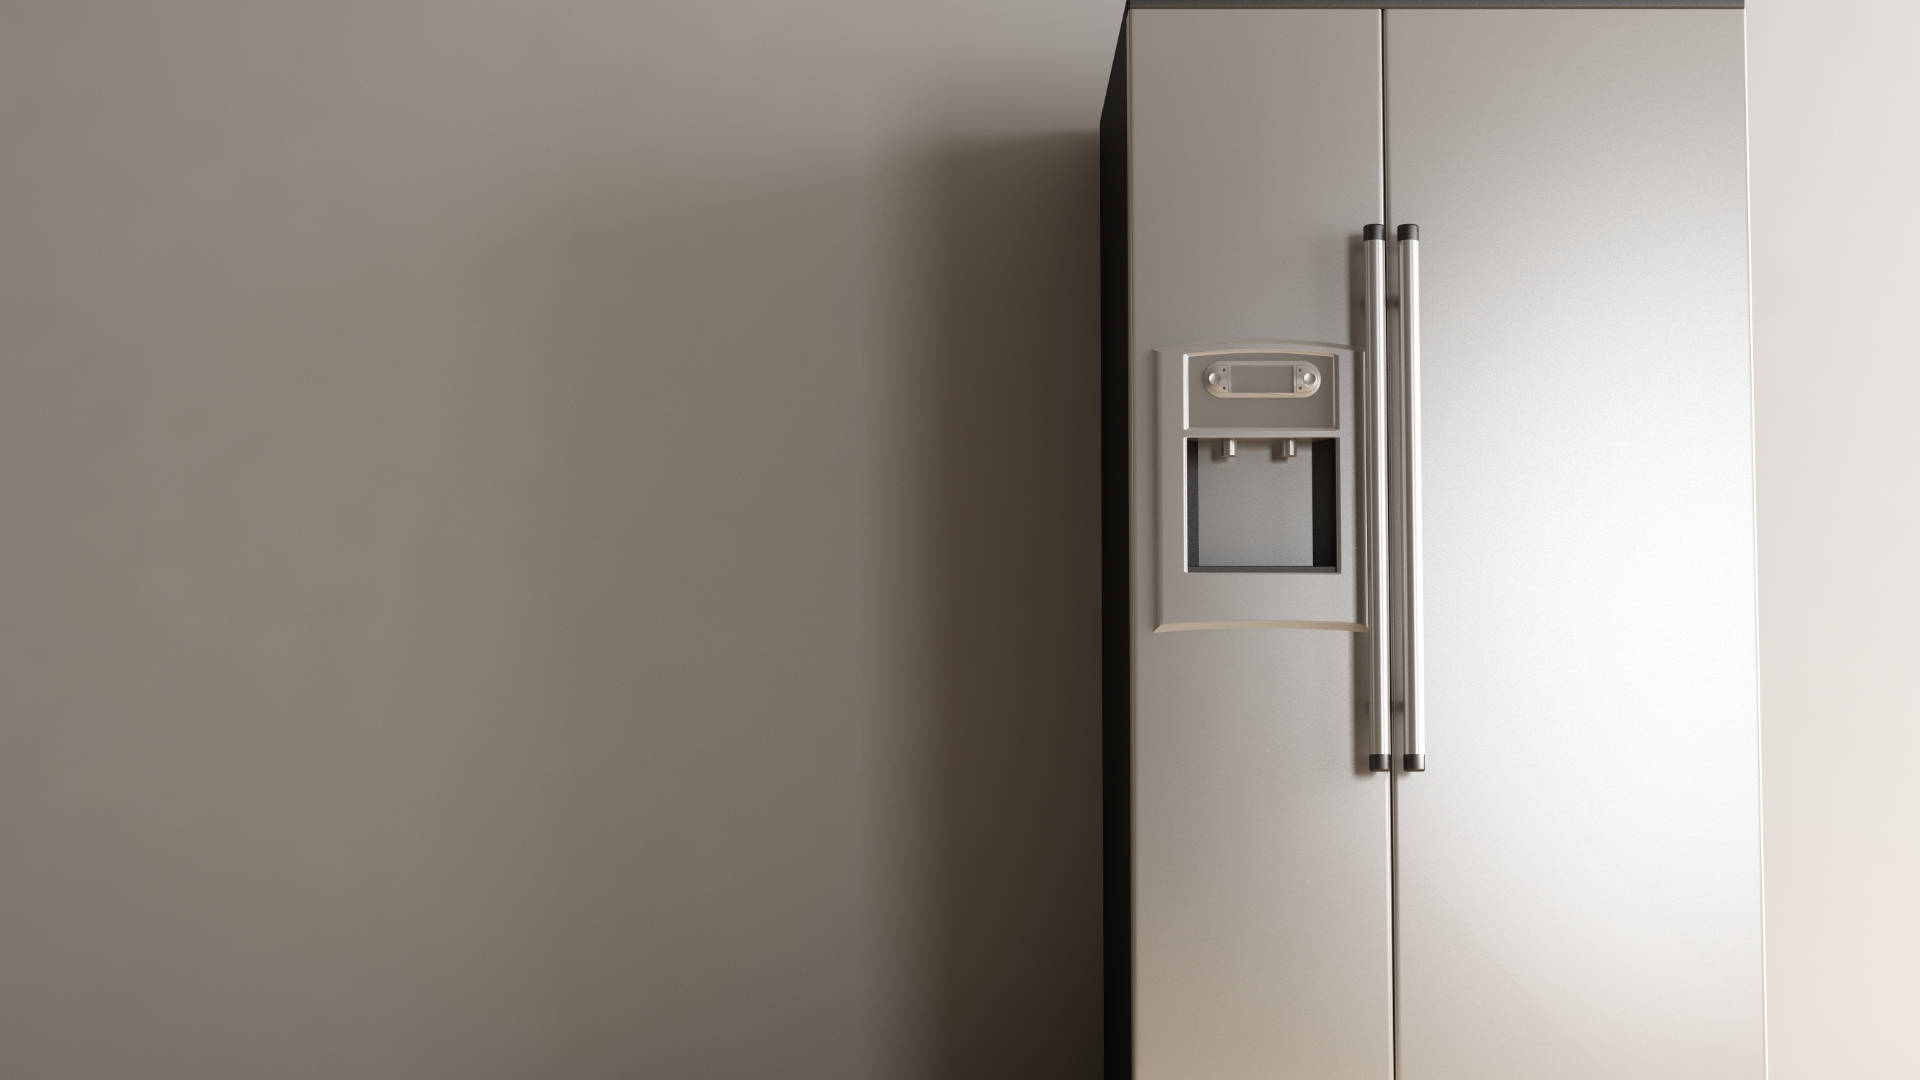 """Featured image for """"Fridge Making Rattling Noise? Here's Why"""""""